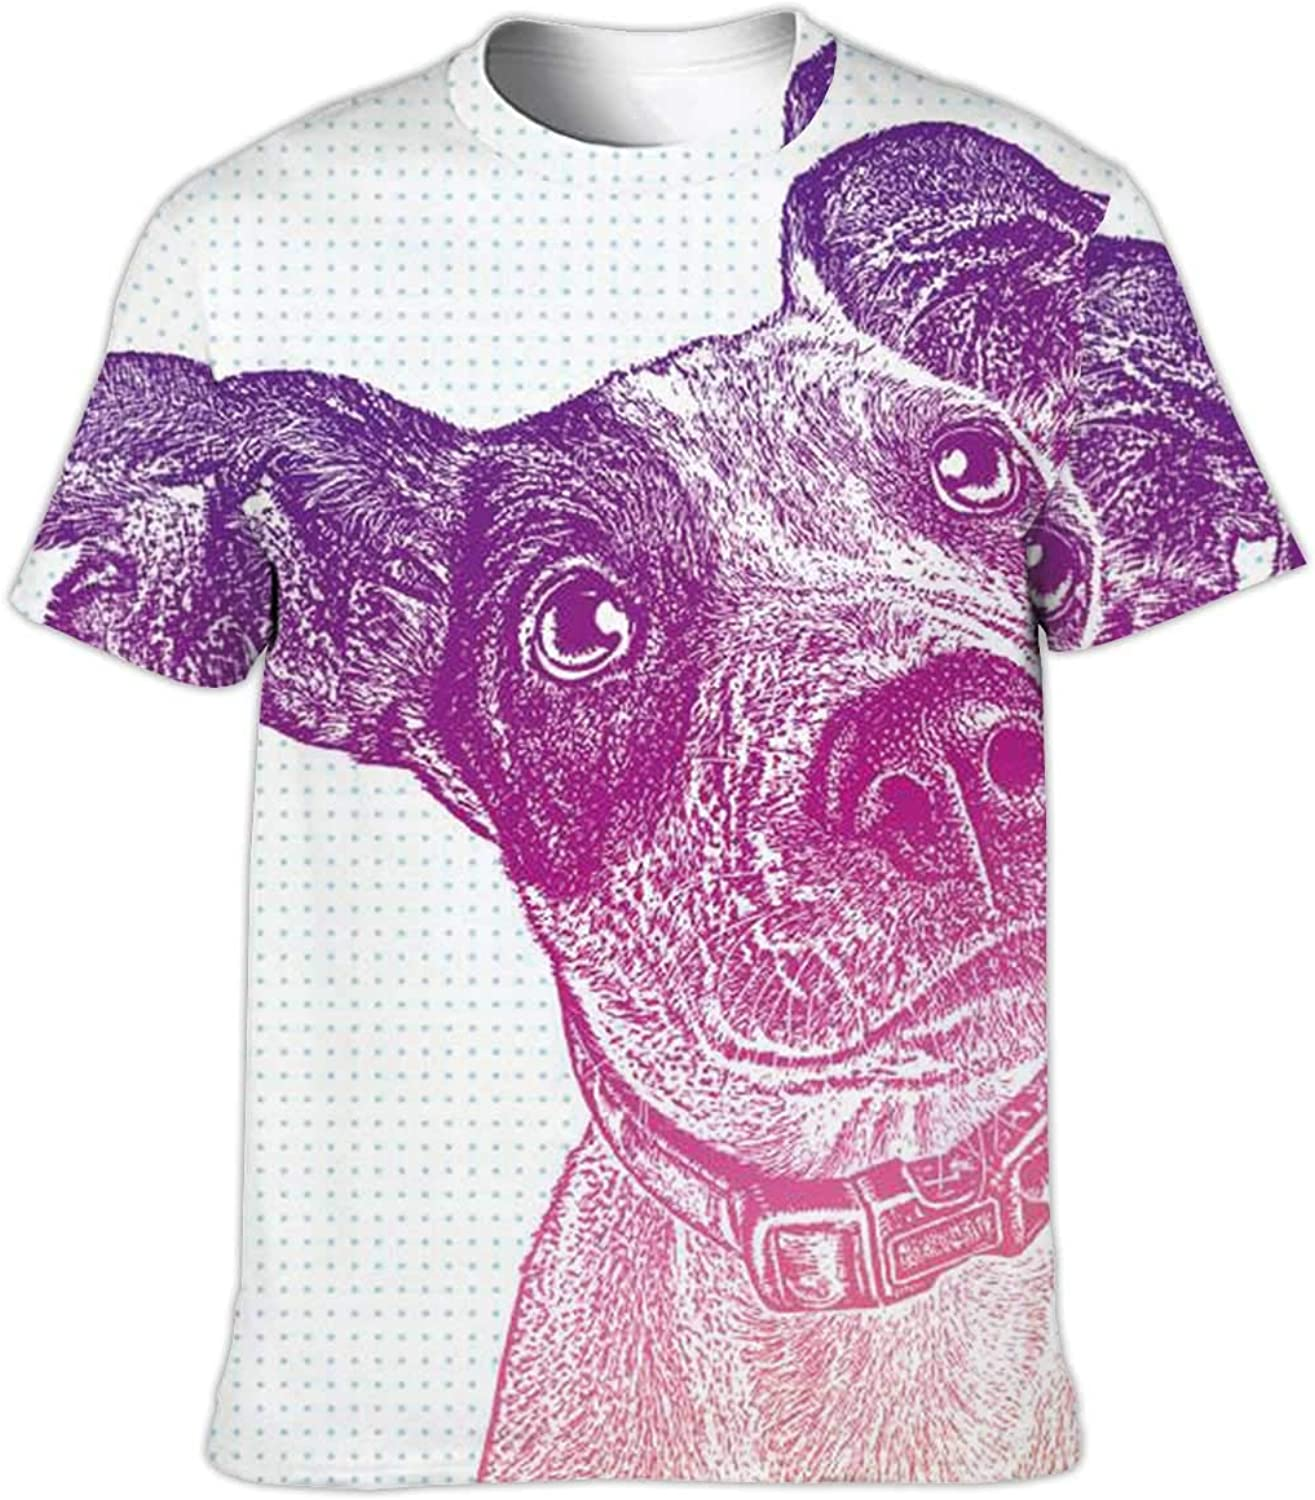 Dog Prints - - Paw Print,Seamless Workout Shirts Dry-Fit T-Shirts Stretch Tops Athletic Shirts Dog S